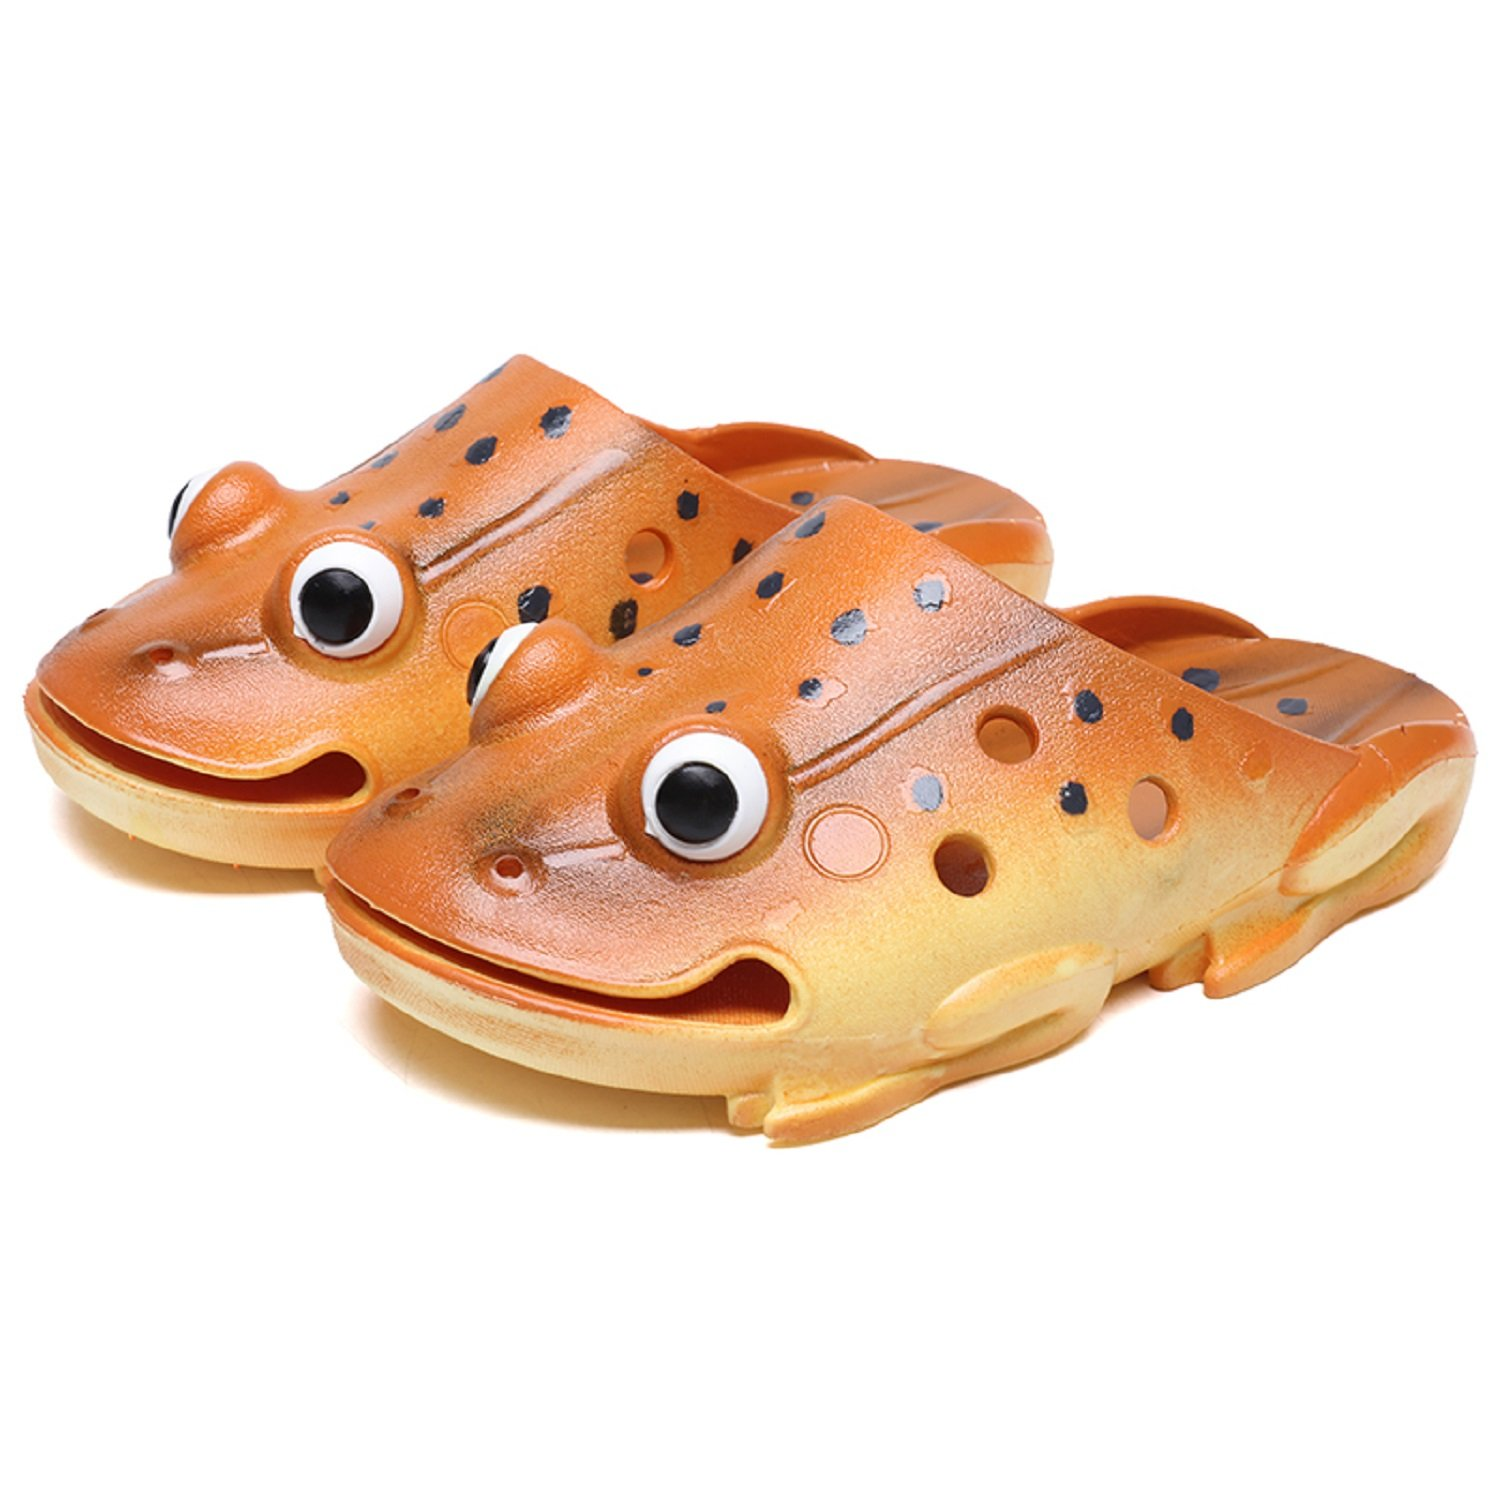 TQGOLD Kids Summer Animal Frog Slippers Outdoor Non-Slip Beach Sandals for Toddler/Boys/Girls Pool Swim Flip Flop Funny Gifts(Size 38,Orange)